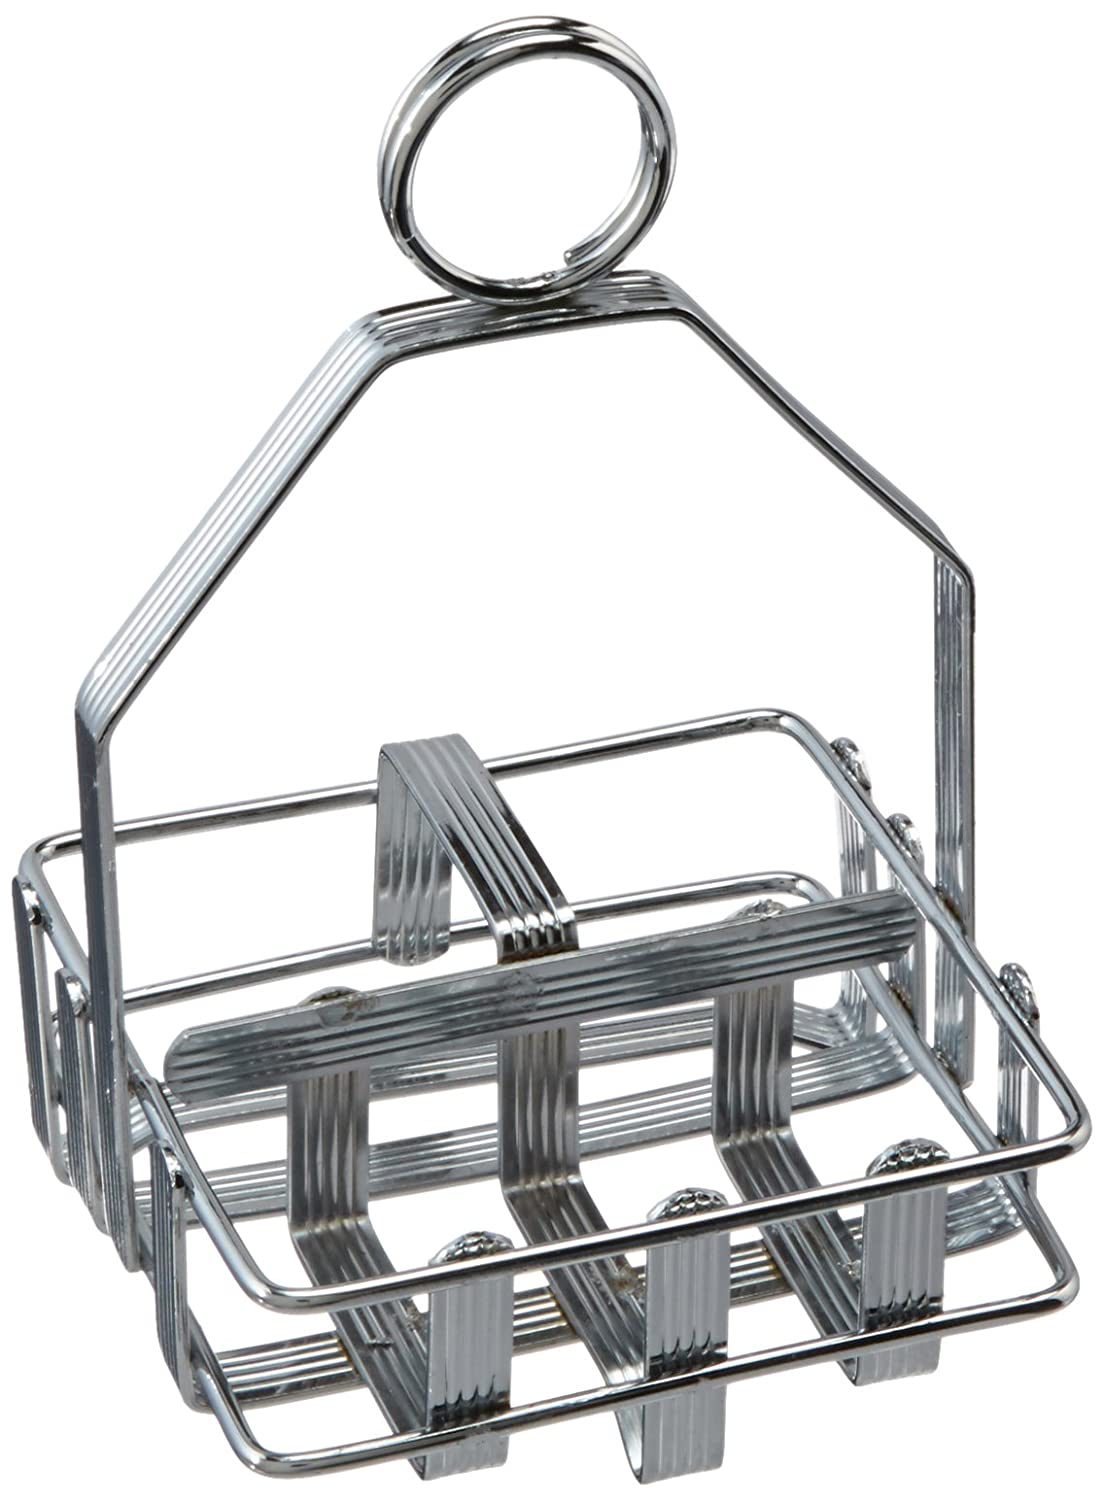 Winco WH-7 Shaker and Packet Holder, Chrome Plated Winco USA